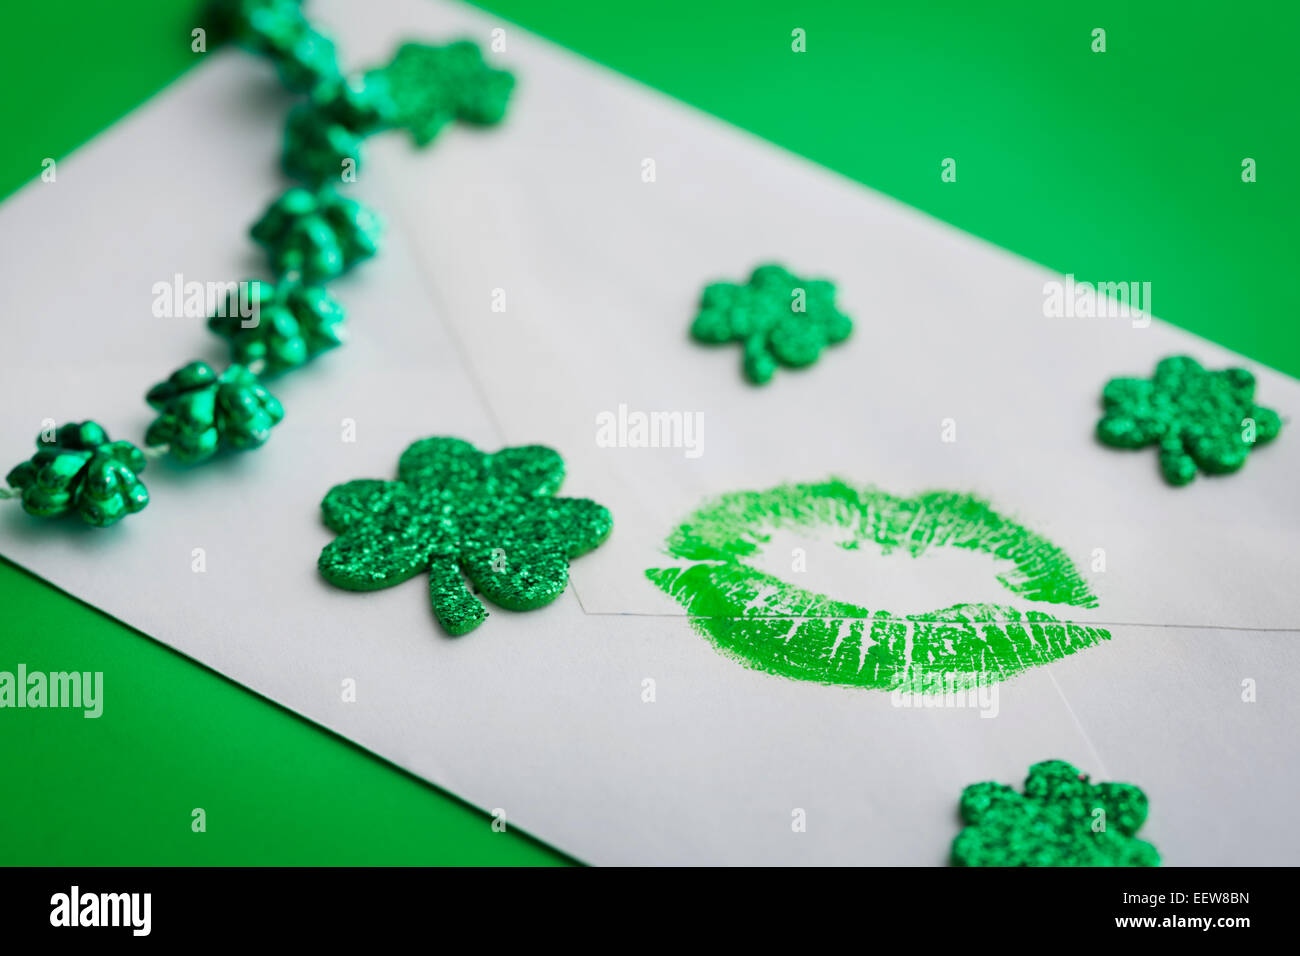 St. Patrick's Day card - Stock Image